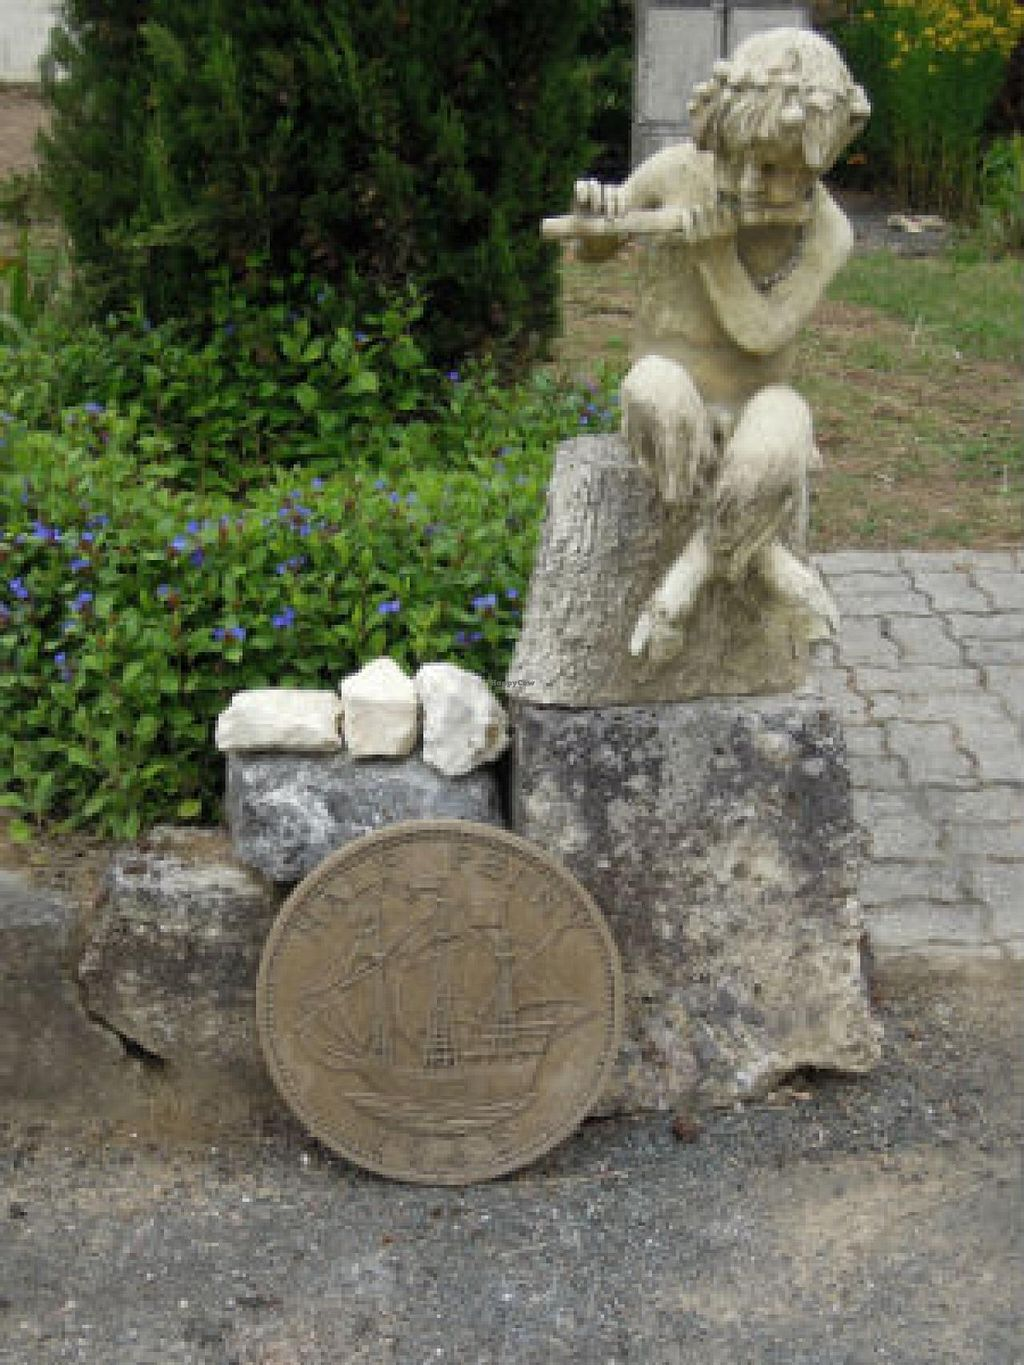 Photo of Le Logis des Quatre Puits  by PlantEaters <br/>The garden at Les Quatre Puits, Neuvicq is full of interesting items and seating areas <br/> July 13, 2014  - <a href='/contact/abuse/image/34122/73937'>Report</a>